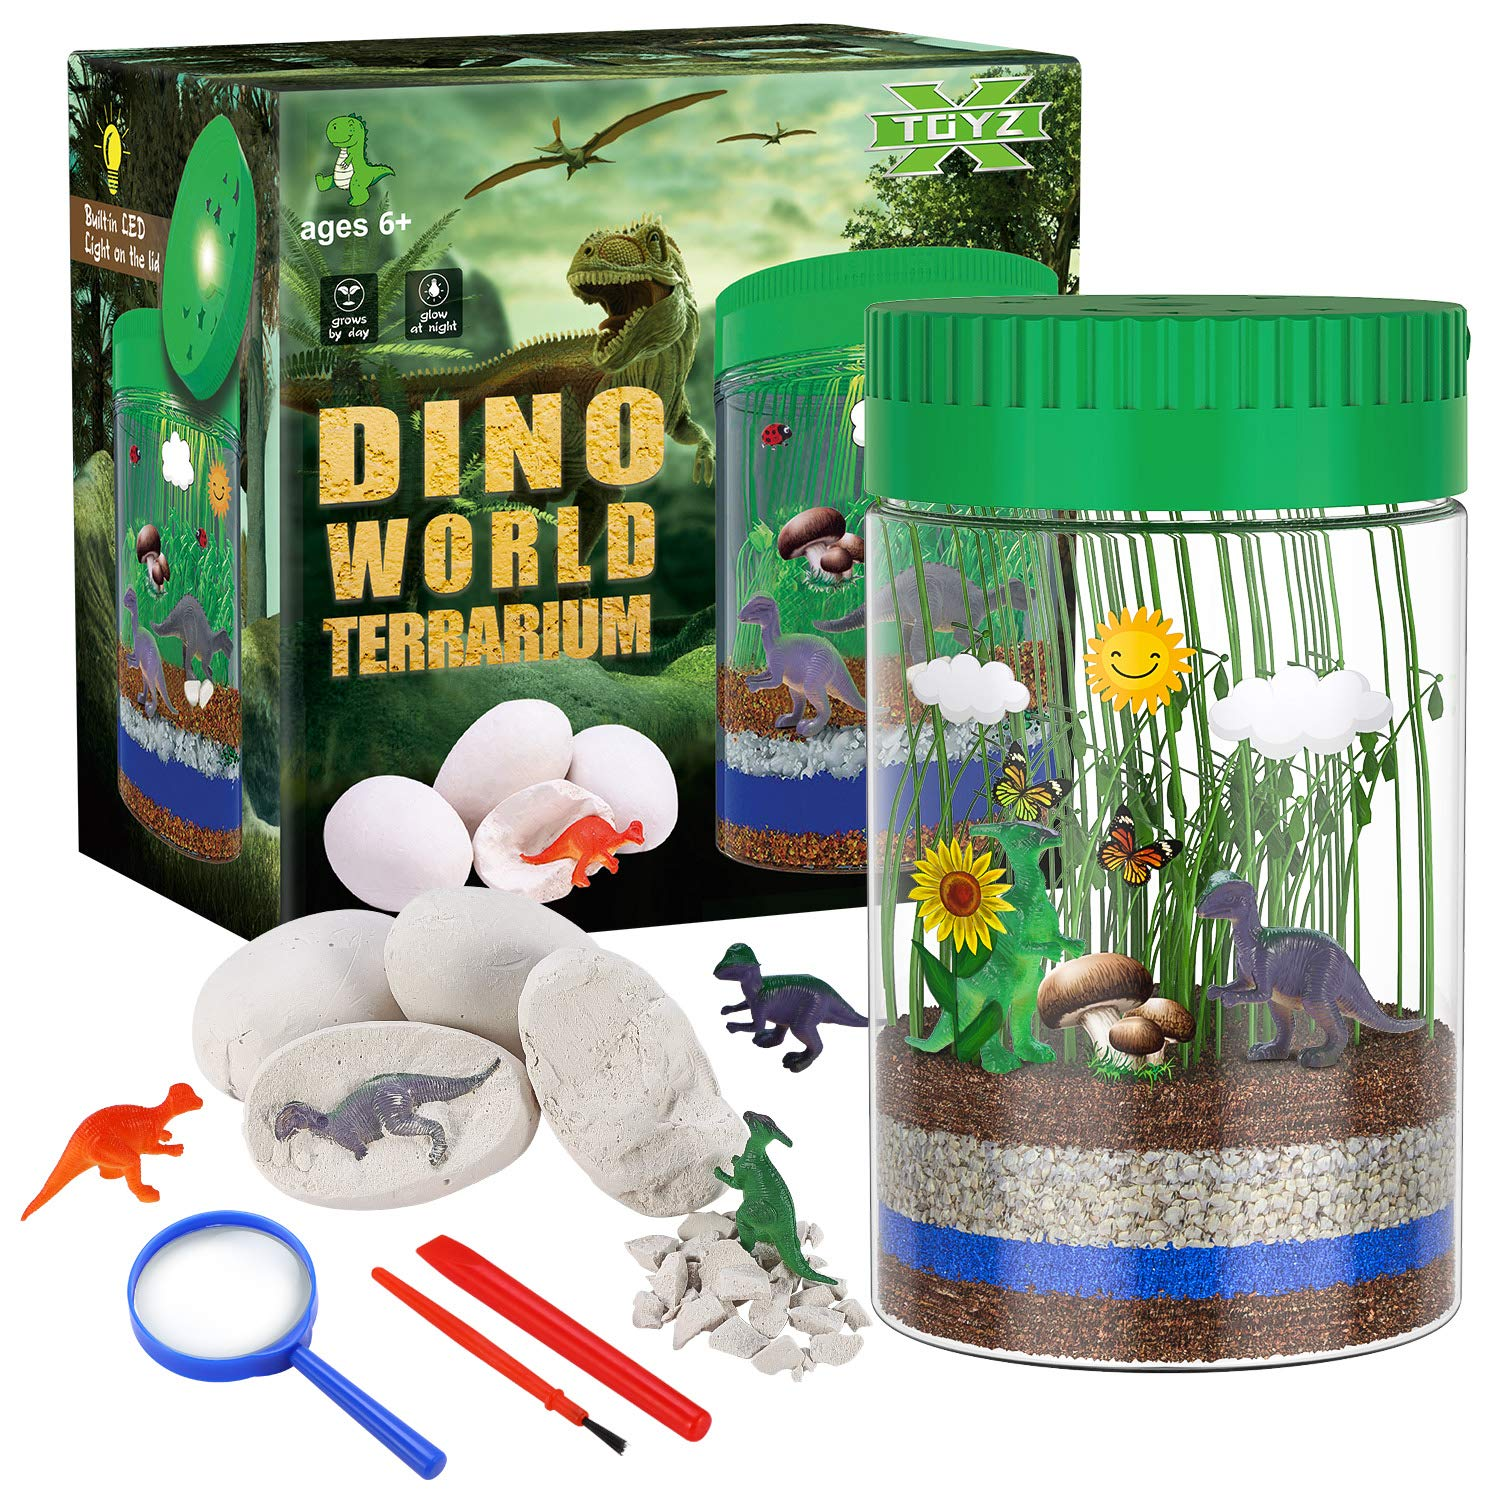 X TOYZ Terrarium Kit for Kids with 4 Dinosaur Egg Dig Bonus Toys, Create Your Own Mini Dinosaur Garden, LED Light on Lid Glows at Night, STEM Educational DIY Science Plant Kit Gifts for Boys Girls